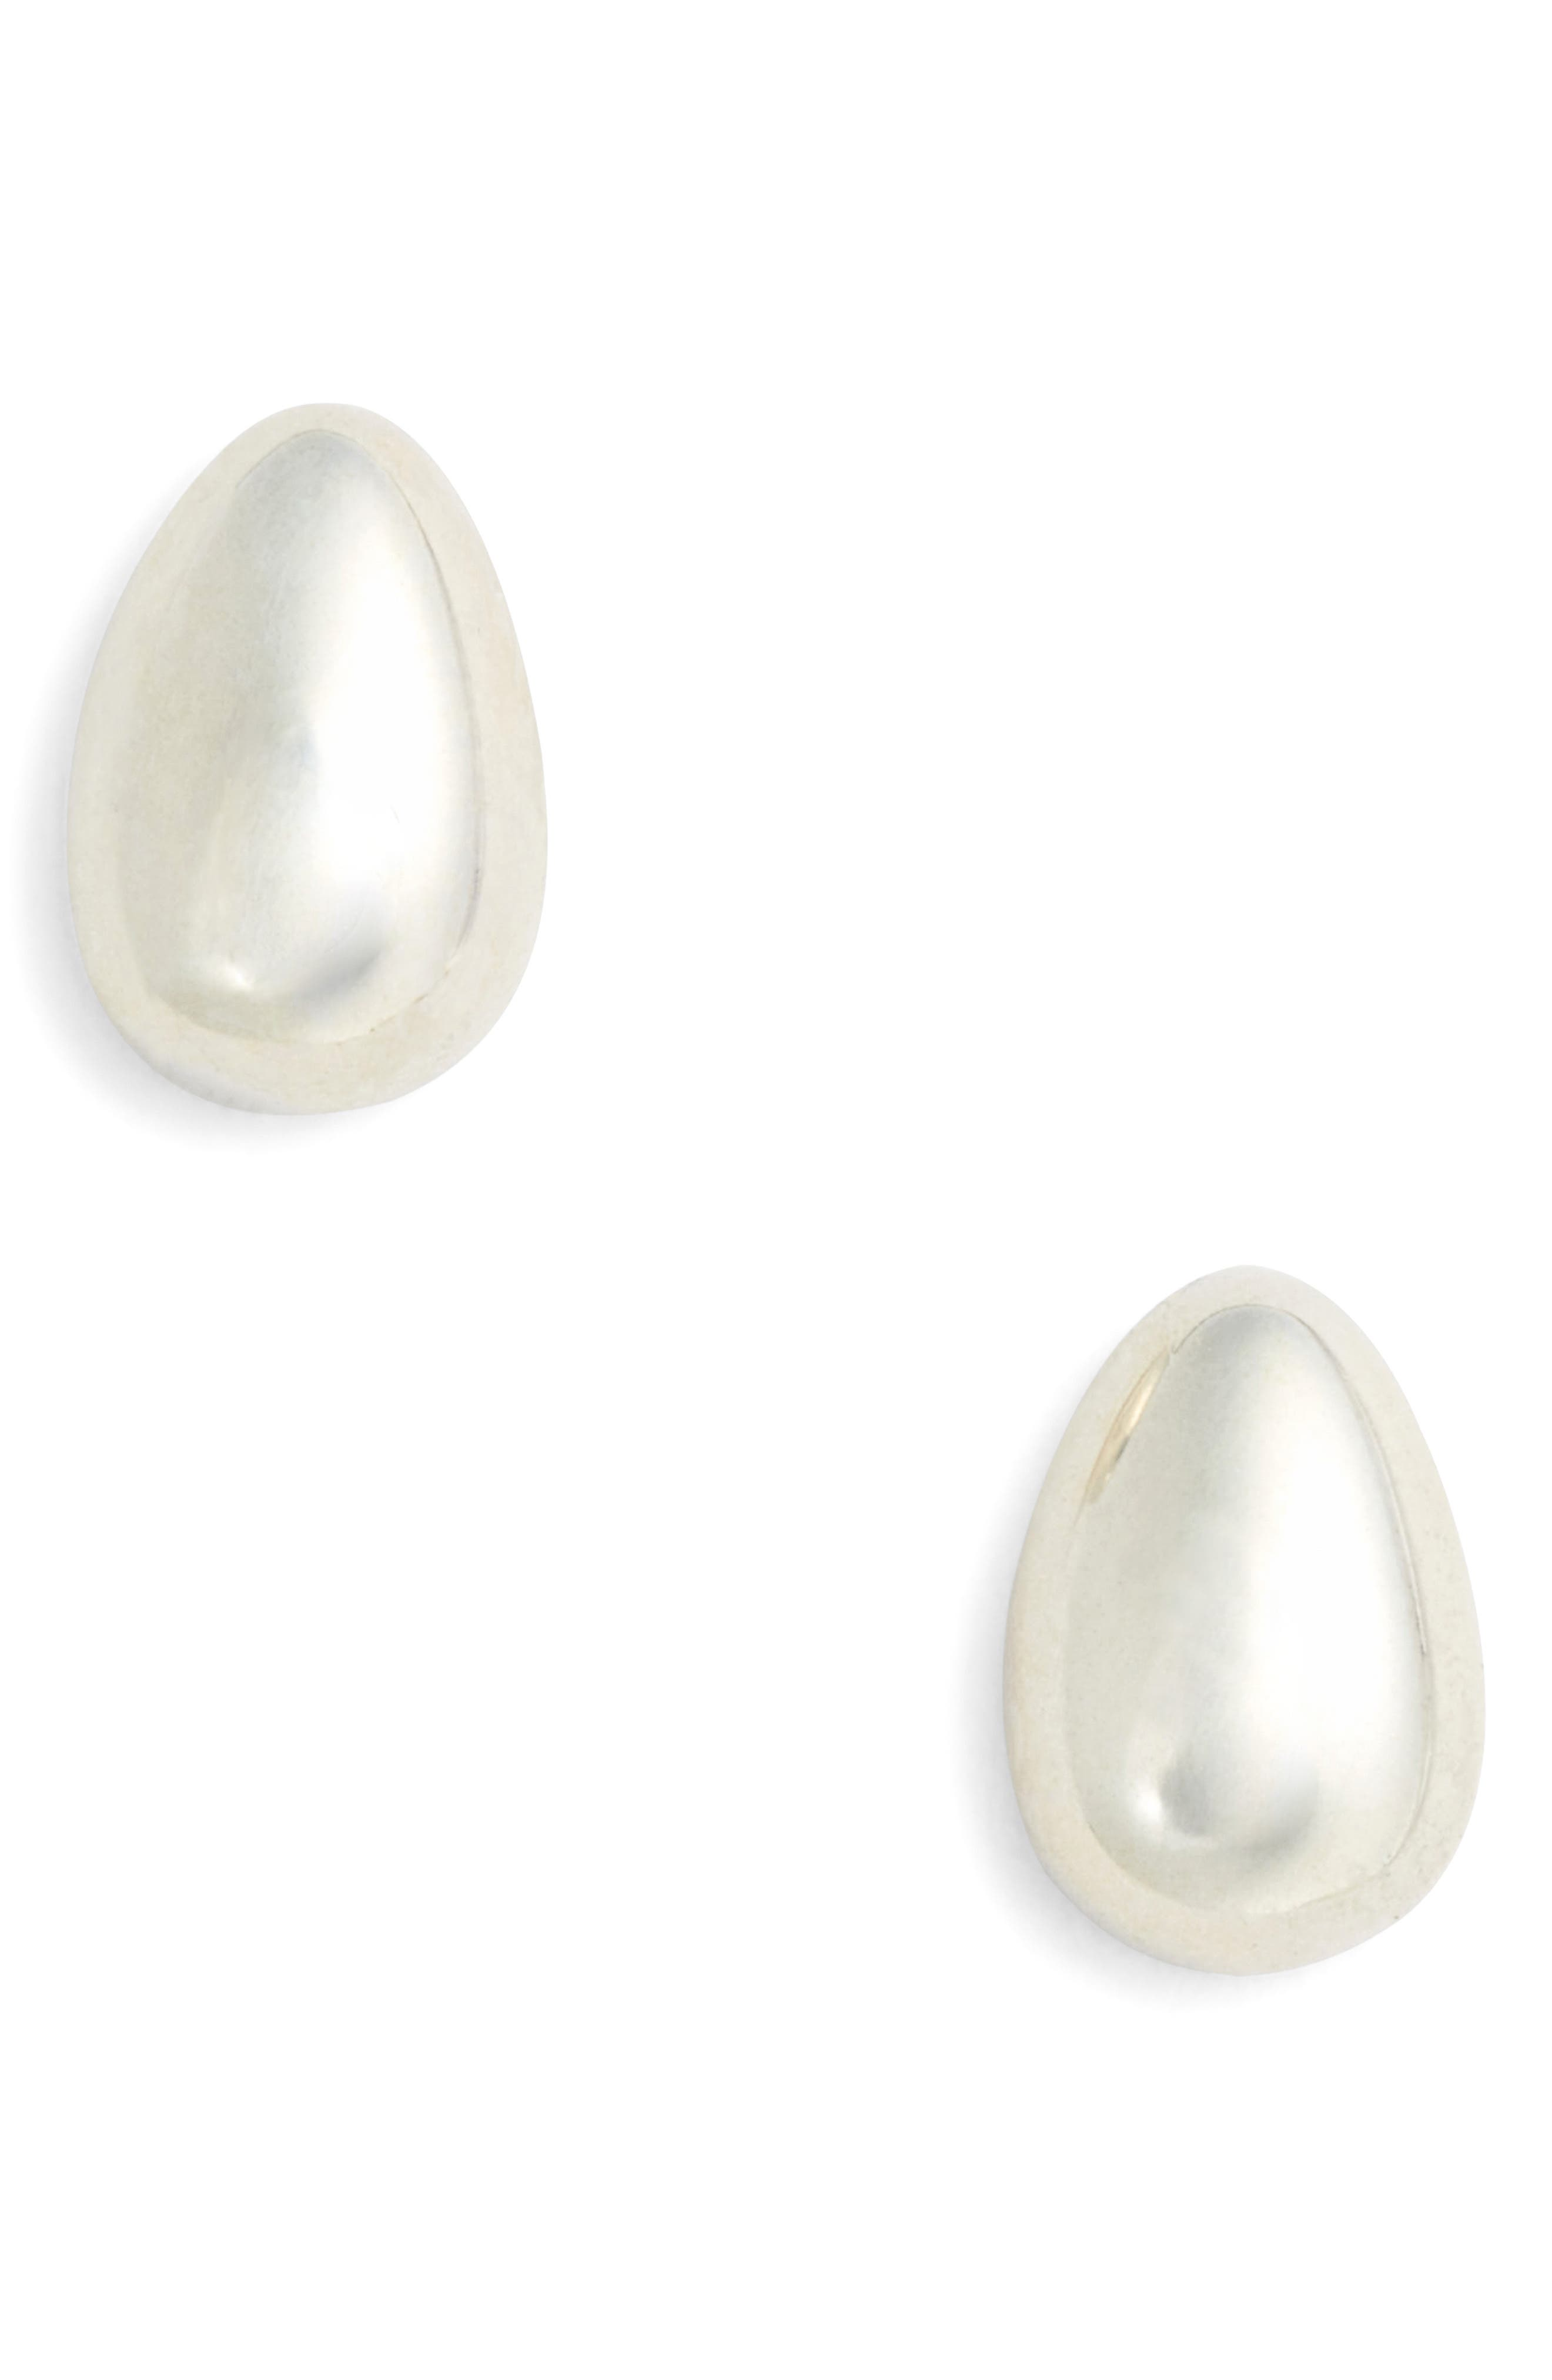 Tiny Egg Stud Earrings,                         Main,                         color, STERLING SILVER